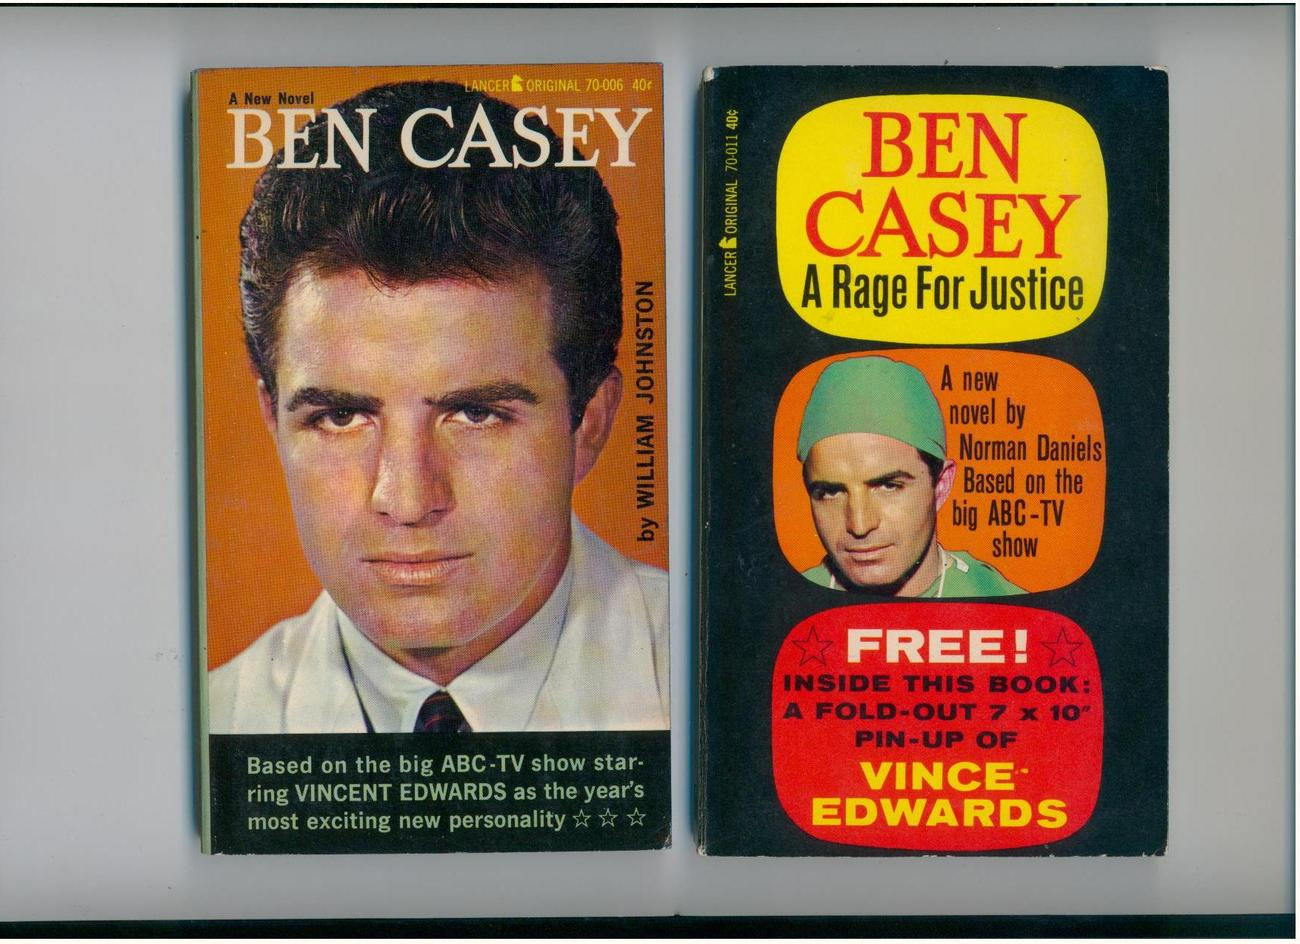 2 BEN CASEY tv tie-in pbs--1962--includes V. Edwards pin-up